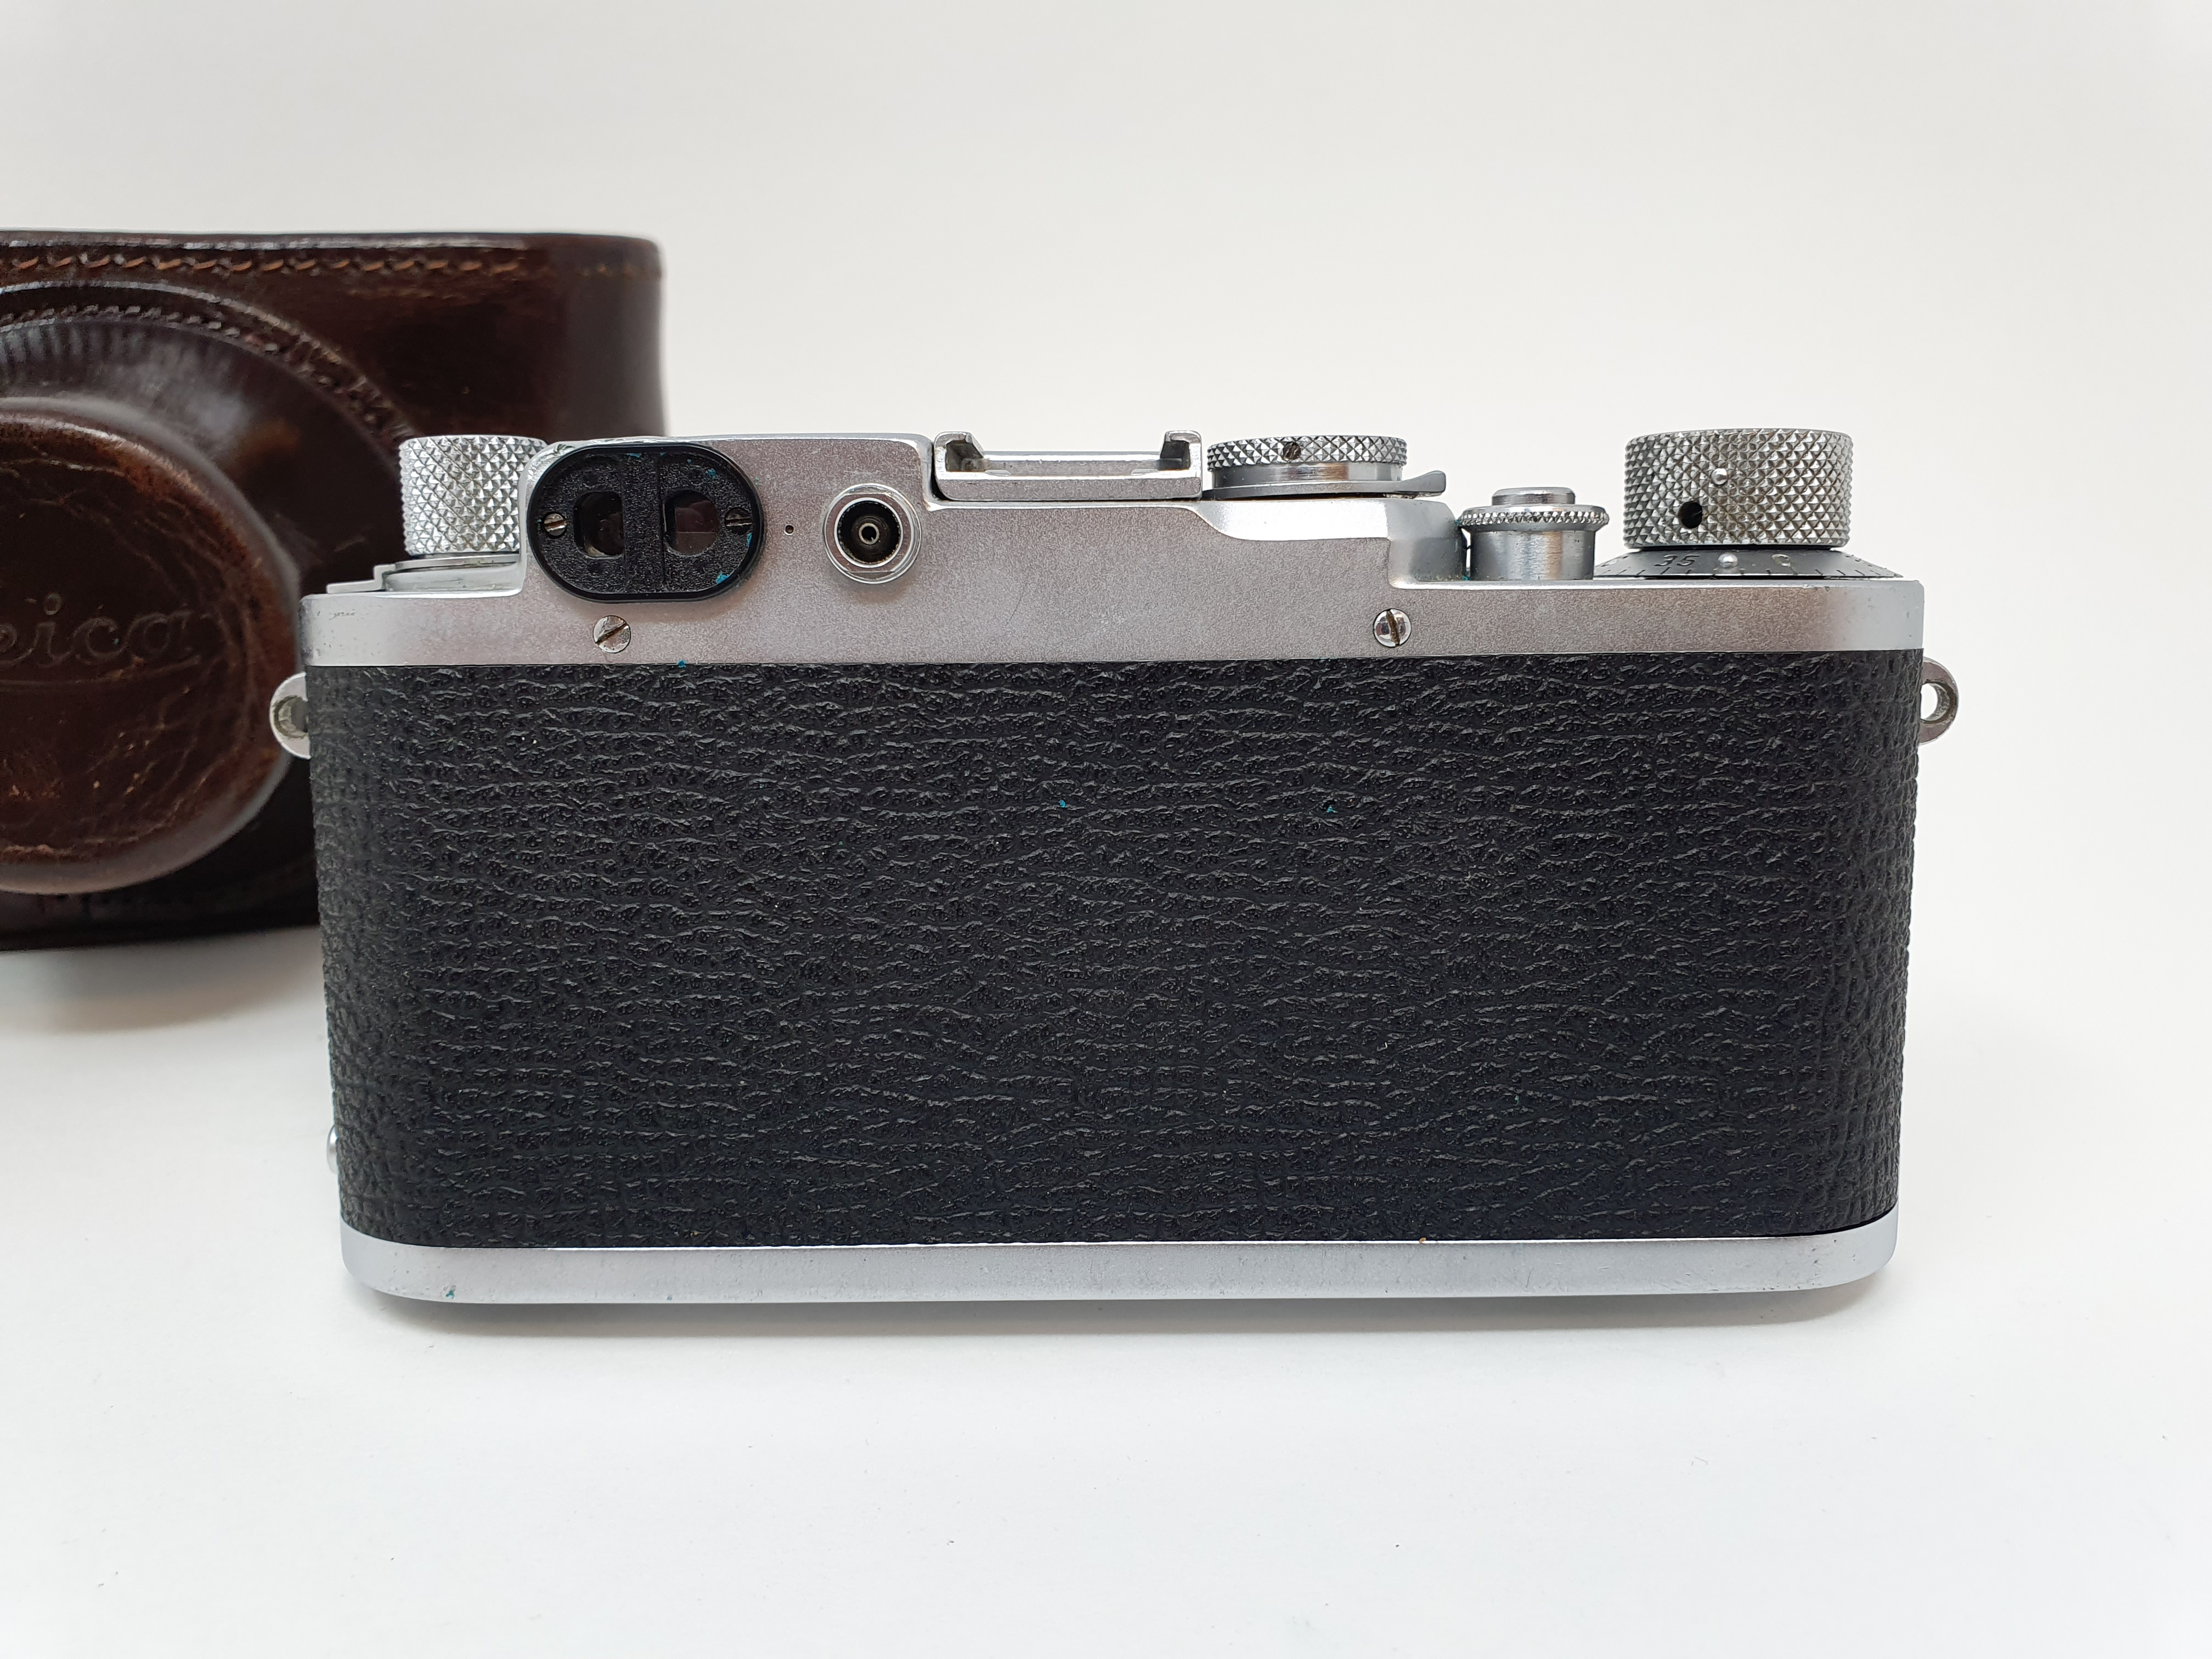 A Leica IIIf camera, serial number 566317, with leather outer case Provenance: Part of a vast single - Image 3 of 4